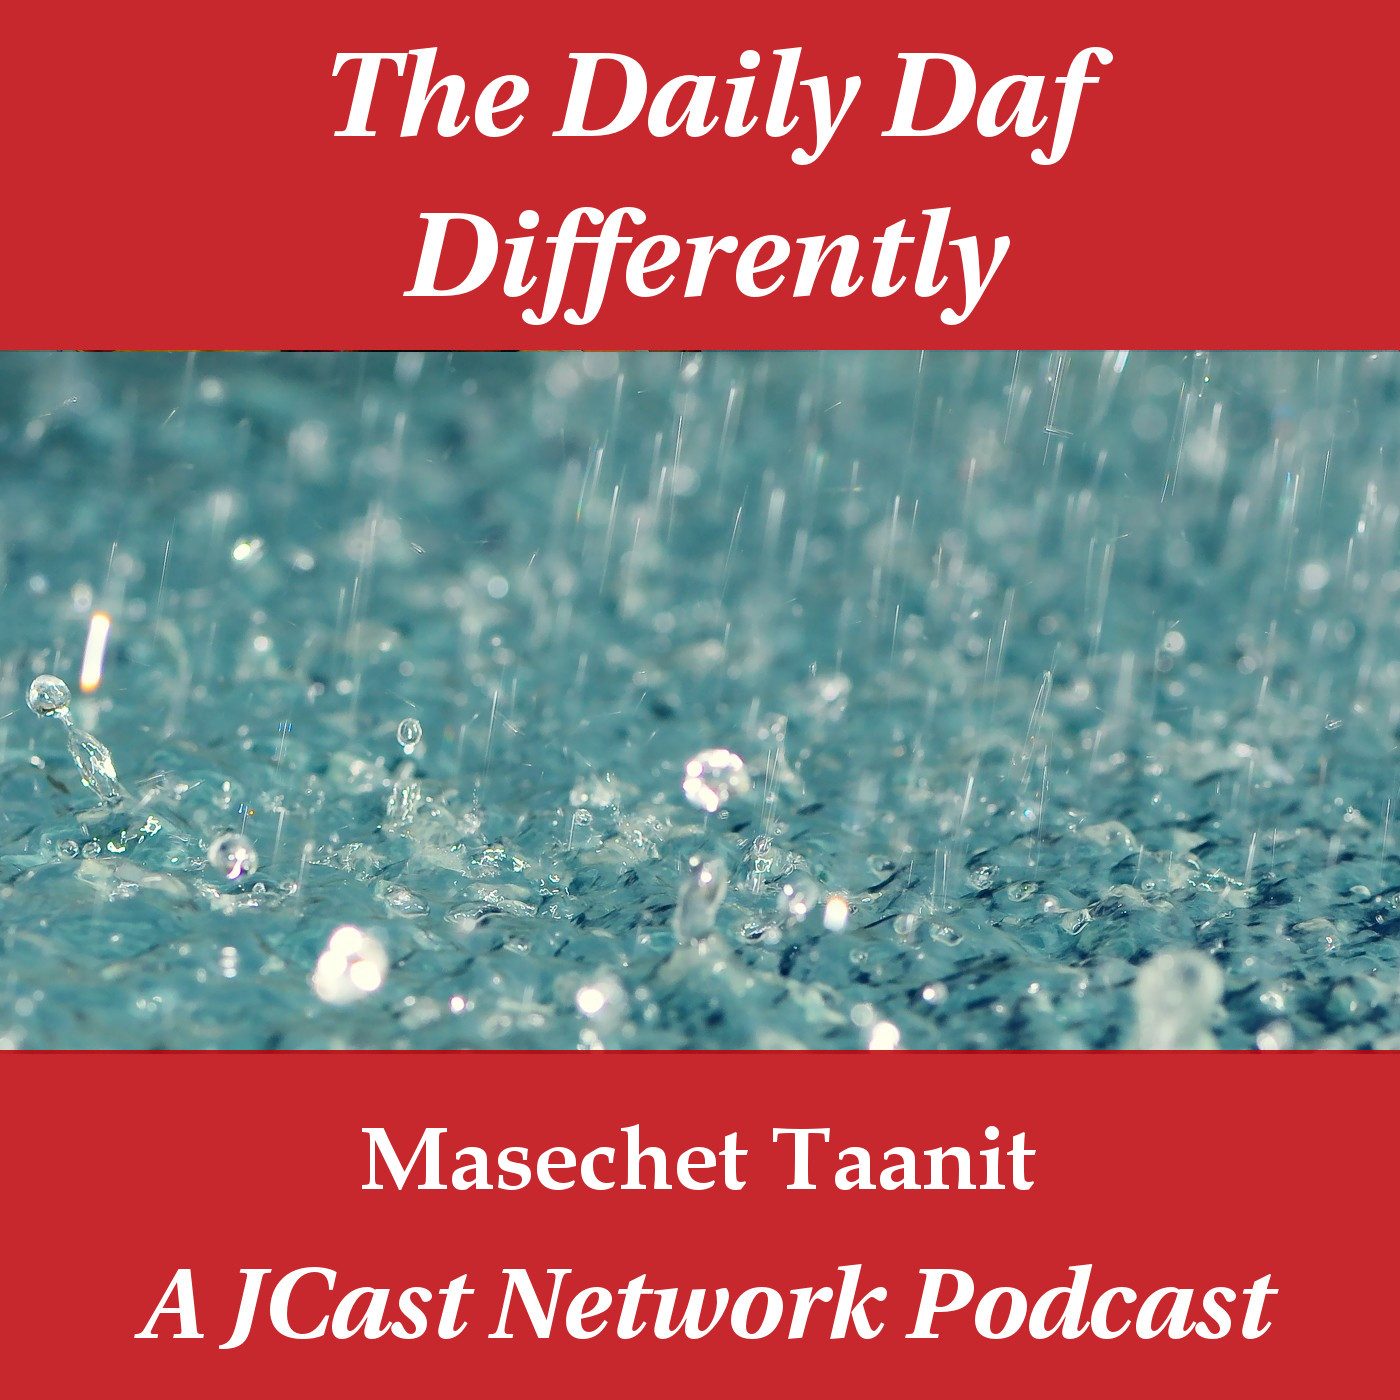 Daily Daf Differently: Masechet Taanit